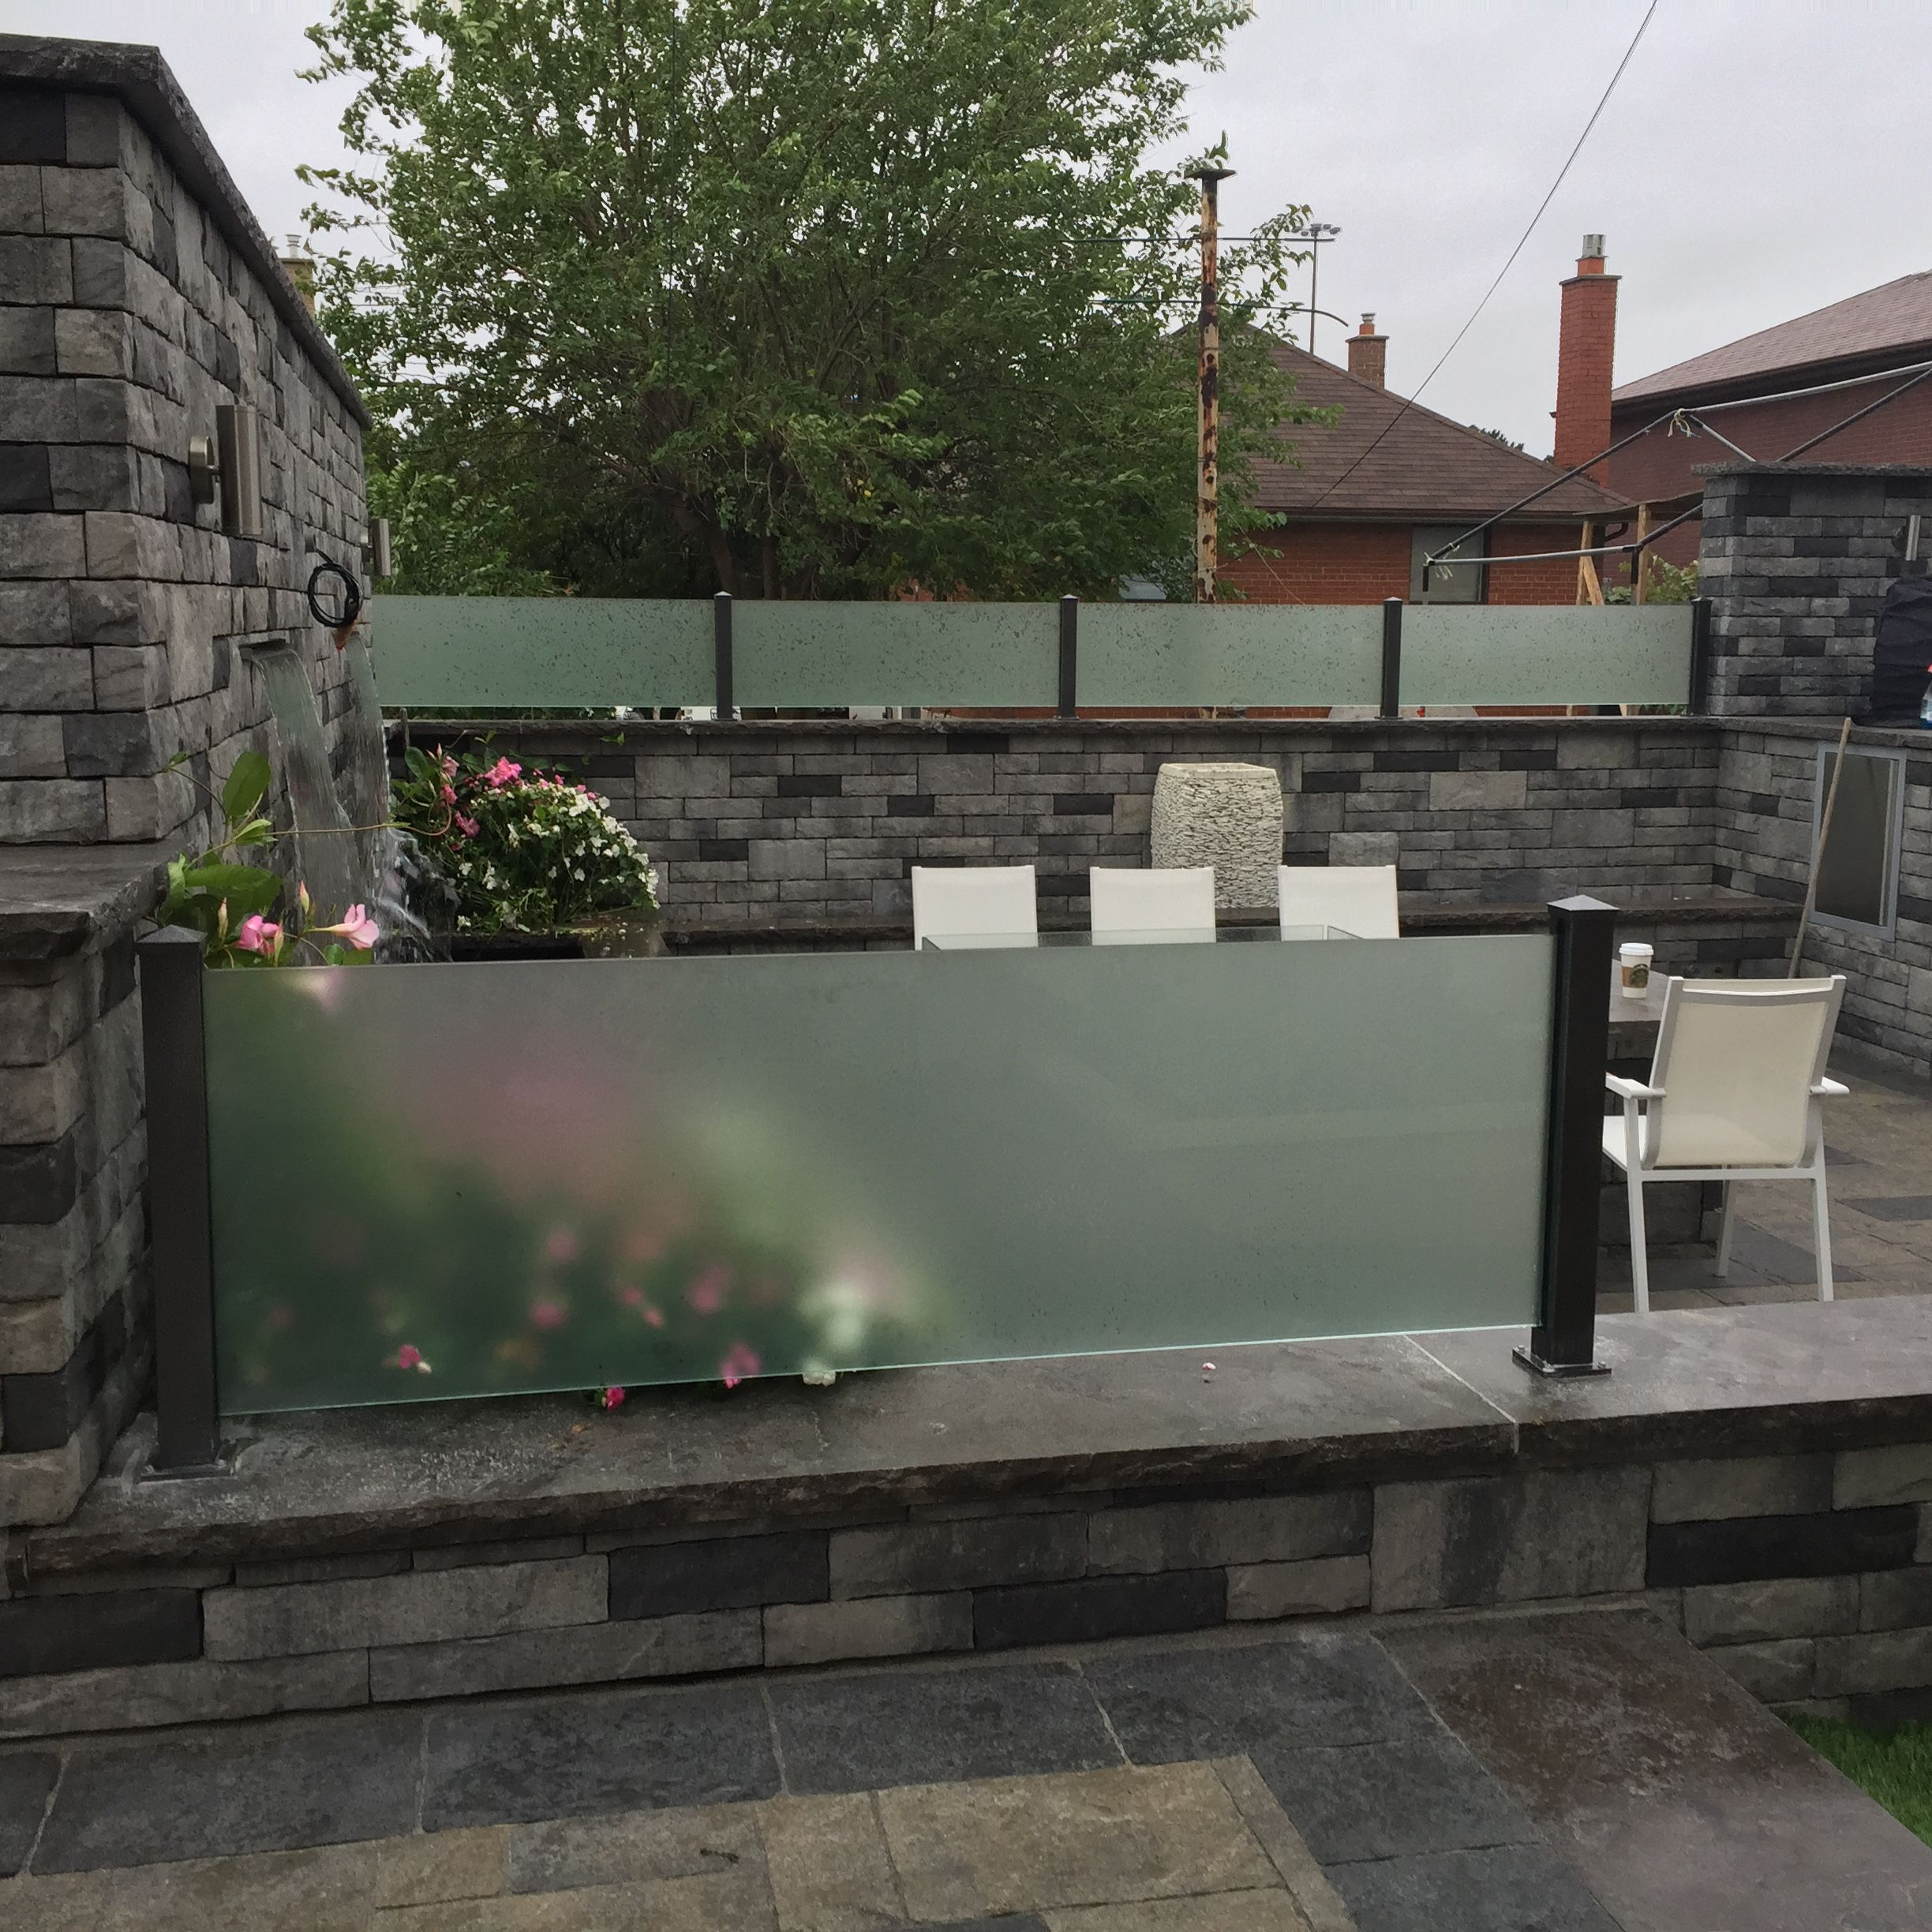 For increased privacy, we offer privacy panels that can be added to decks, patios, balconies, and terraces. Our privacy panels can be either made of aluminum or with glass inserts or filled with cedar, offering privacy with a sleek, refined design.